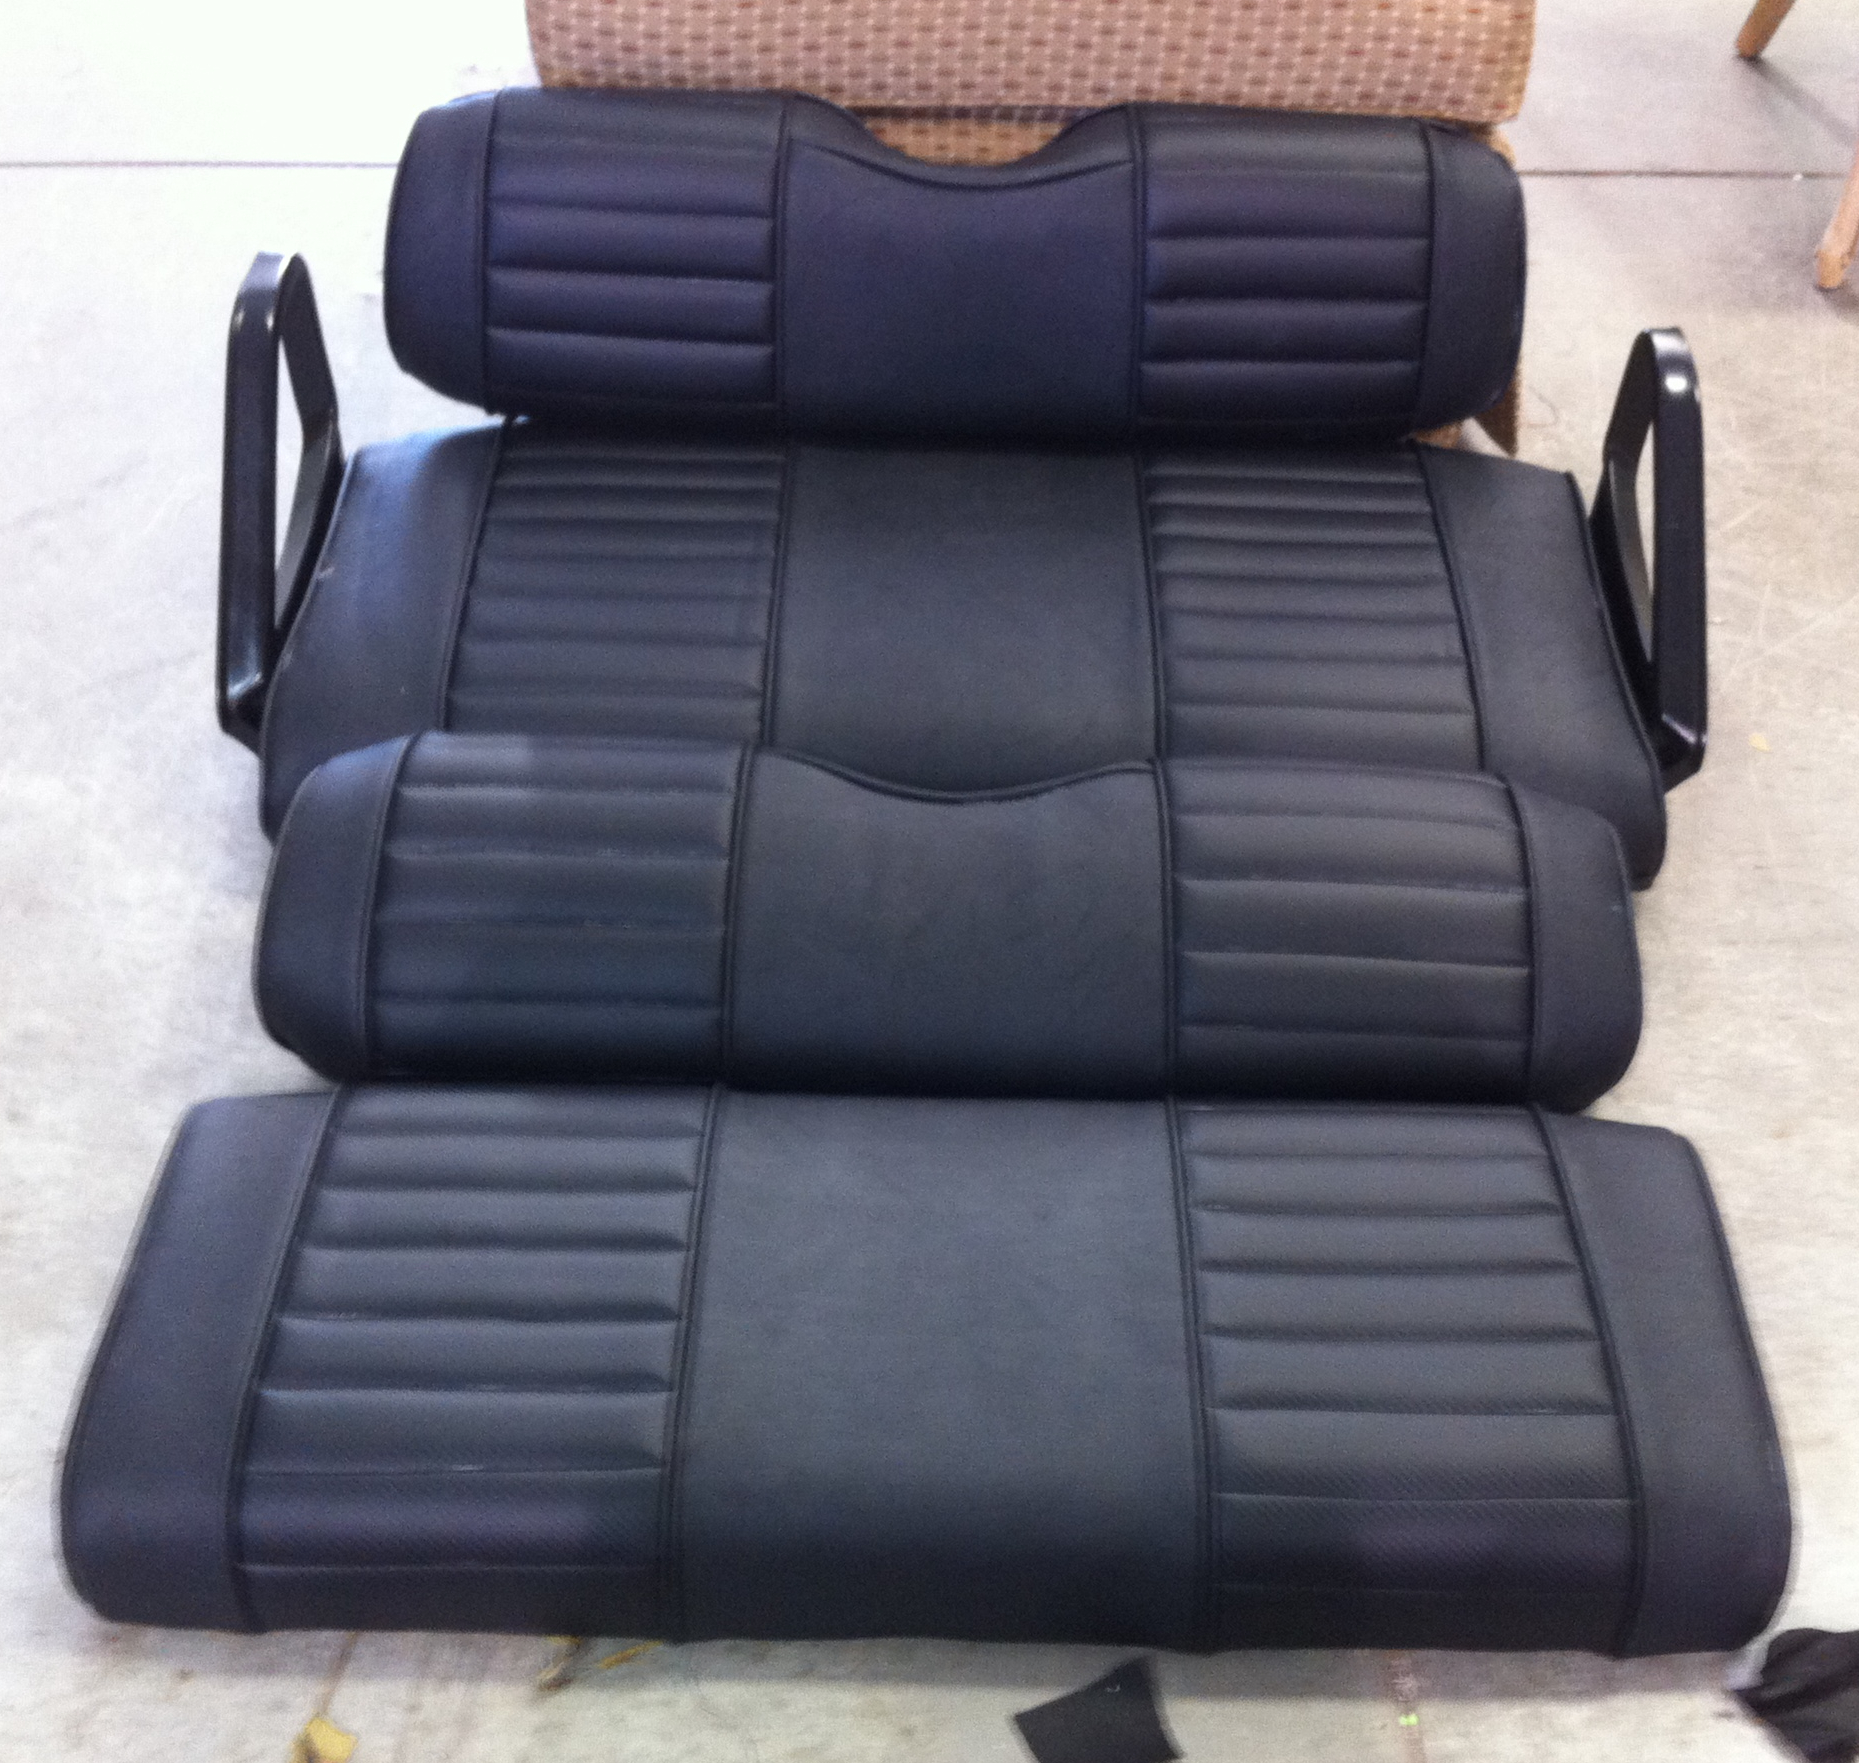 Auto Upholstery and Repair